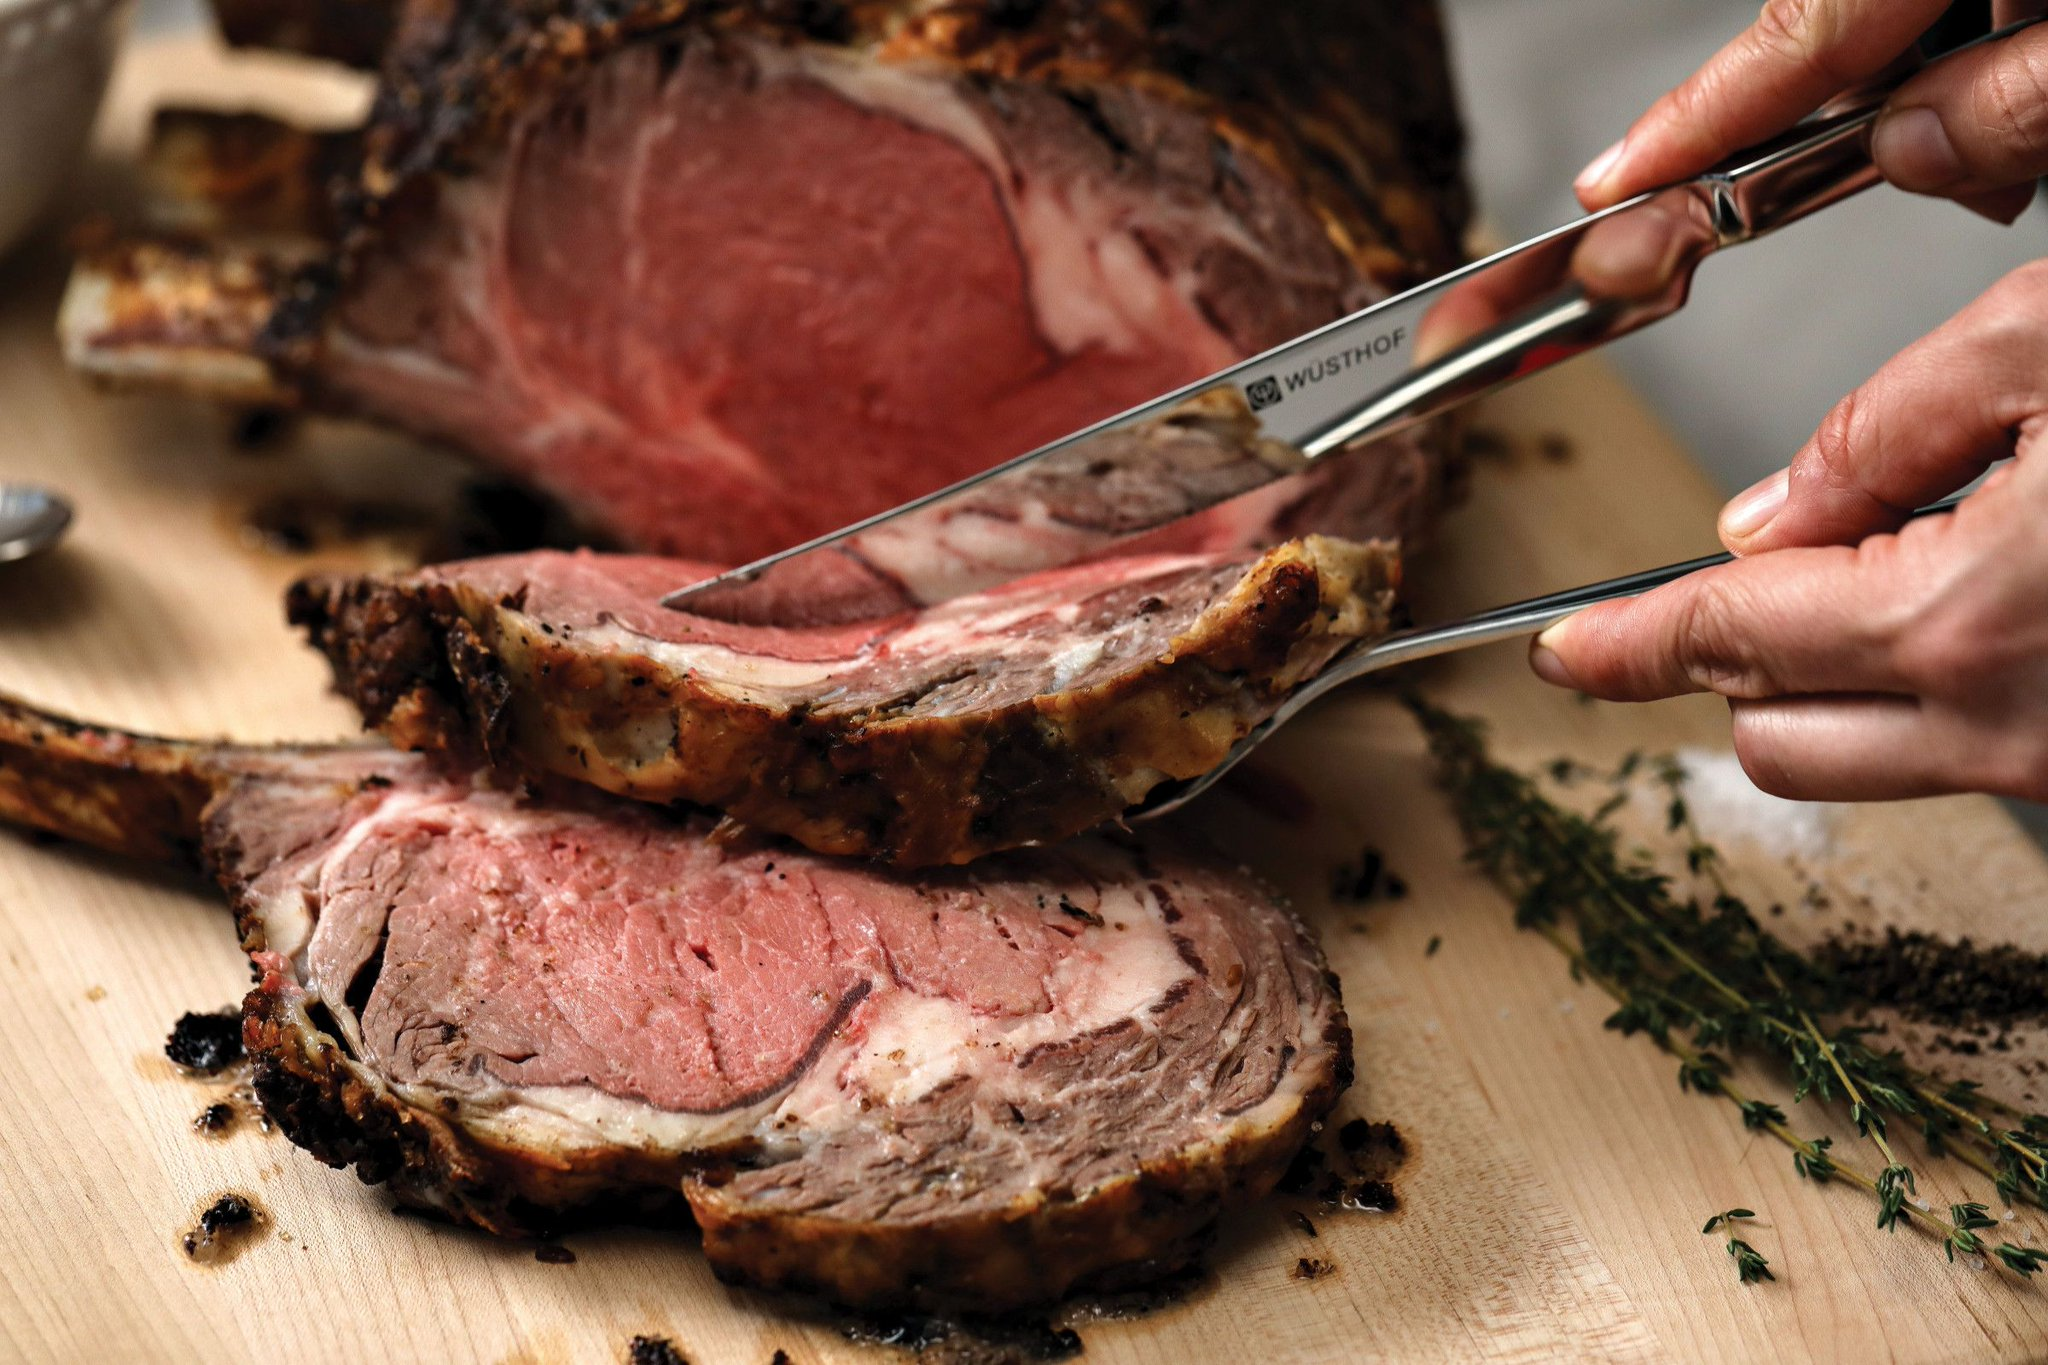 Prime Rib Monday again at Deed's Bar & Grill!  $17 for a delicious prime rib dinner served with seasonal veggies, mashed potatoes, au jus and horseradish cream sauce.  Come out for Monday night football and a chance to win great prizes! #PrimeRib  #DeedsBarandGrill https://t.co/btZu6VP3To